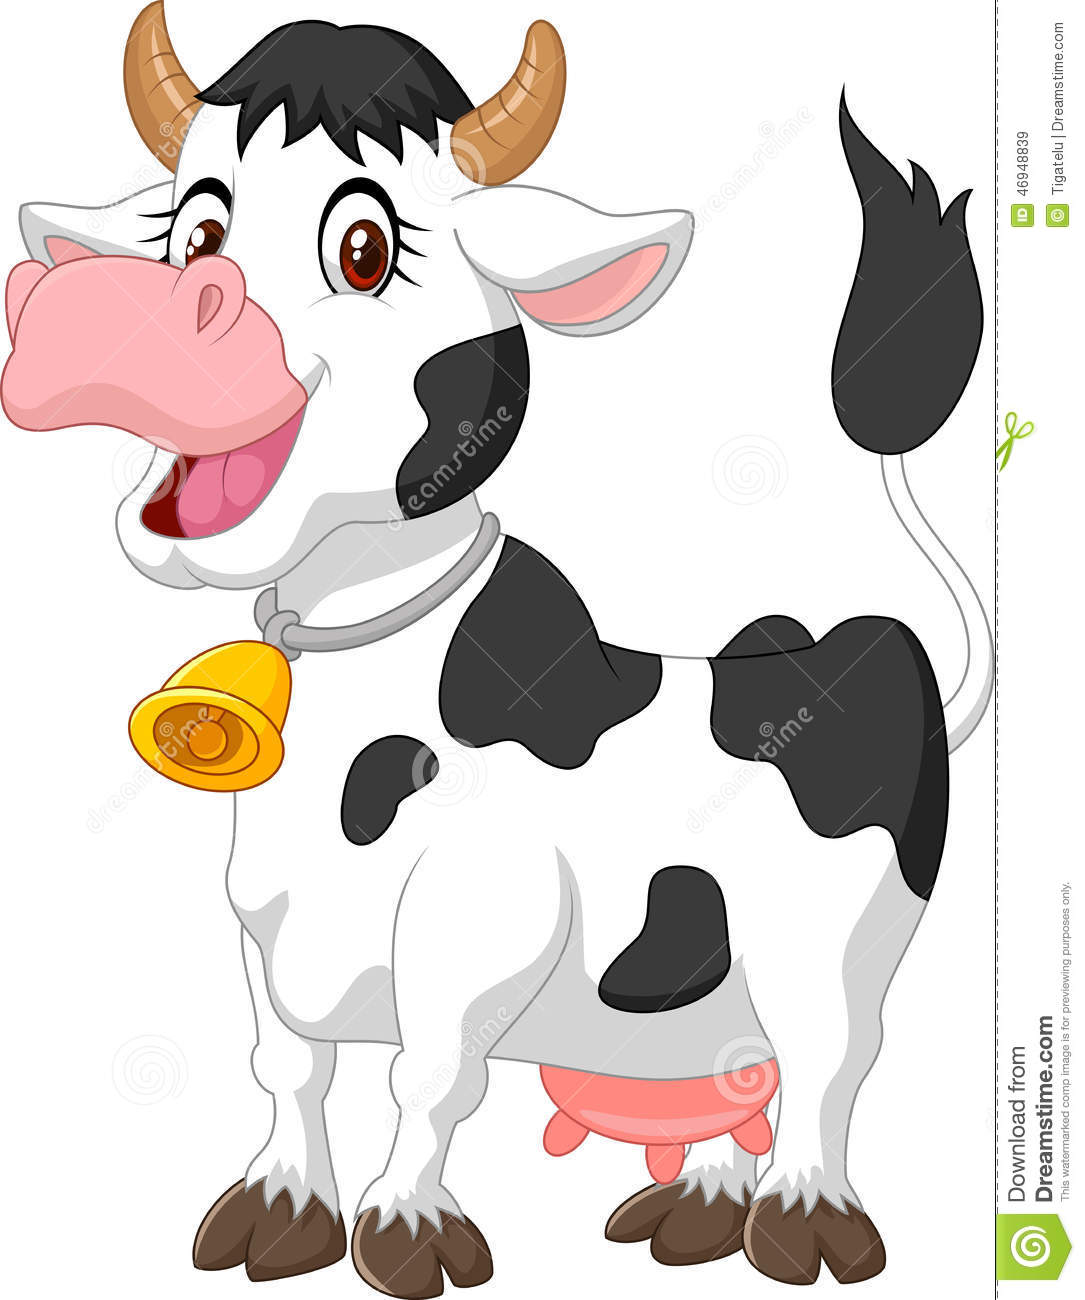 Happy Cartoon Cow Stock Vector. Illustration Of Cute